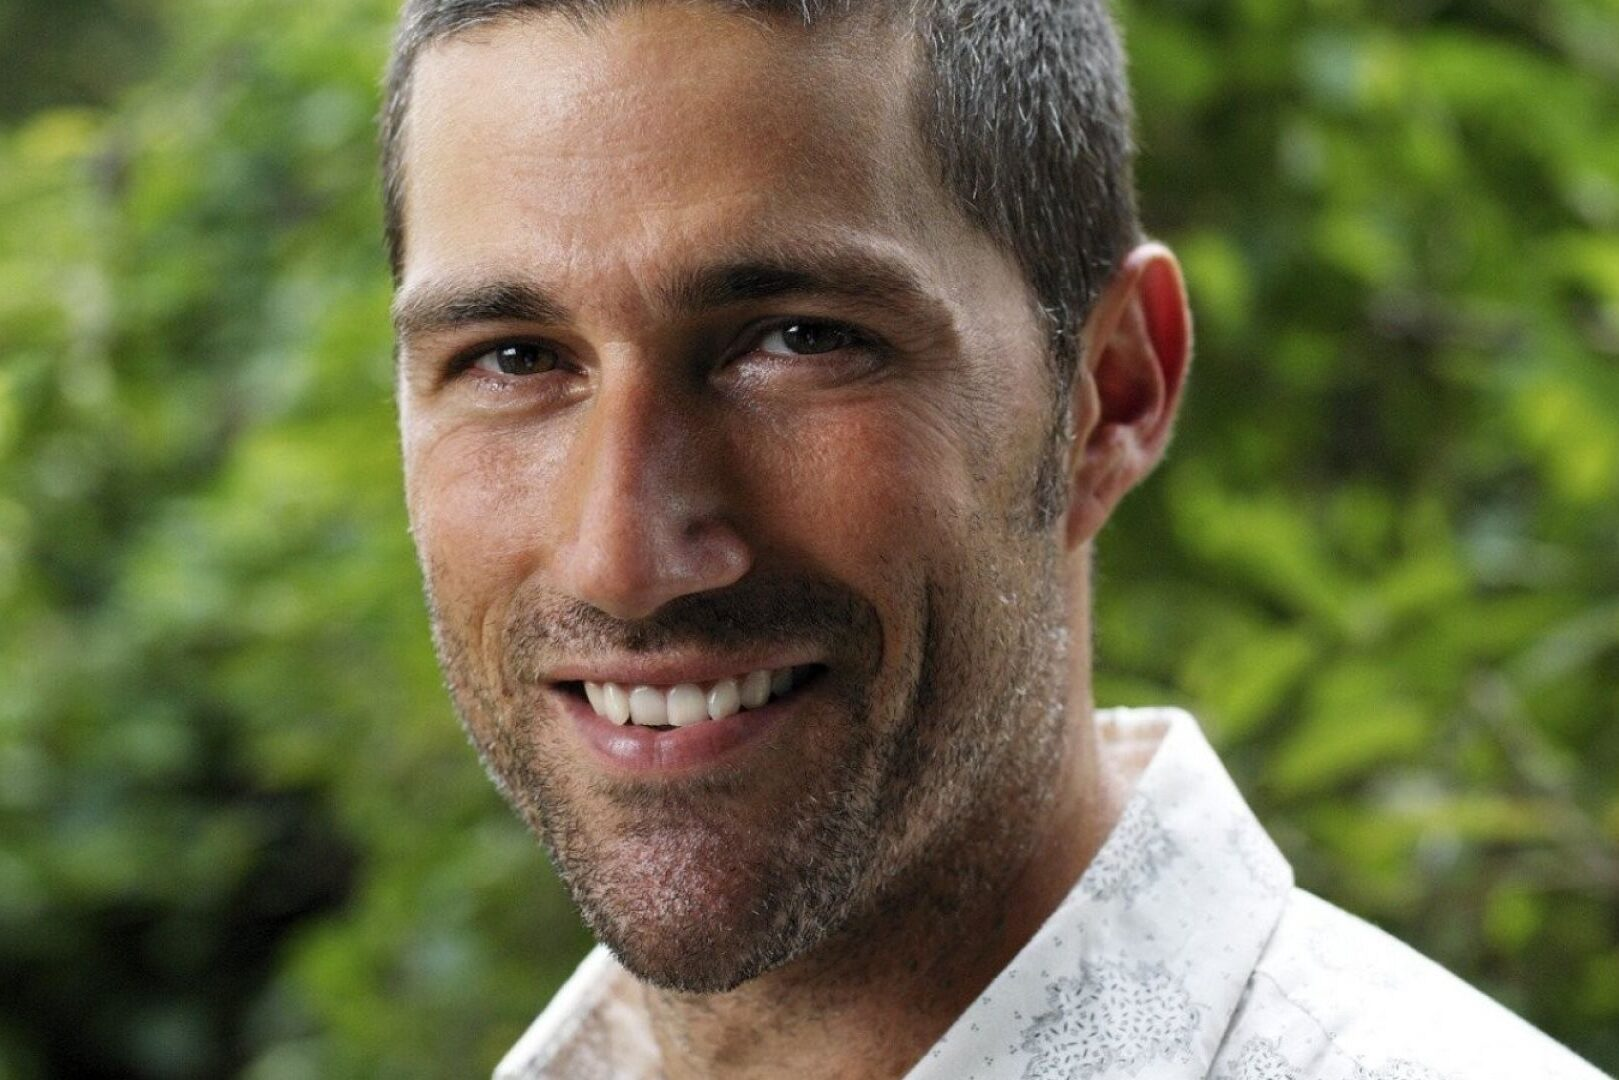 Matthew Fox: Accused Of Beating Women, Now The Lost Star Is Out Of Work